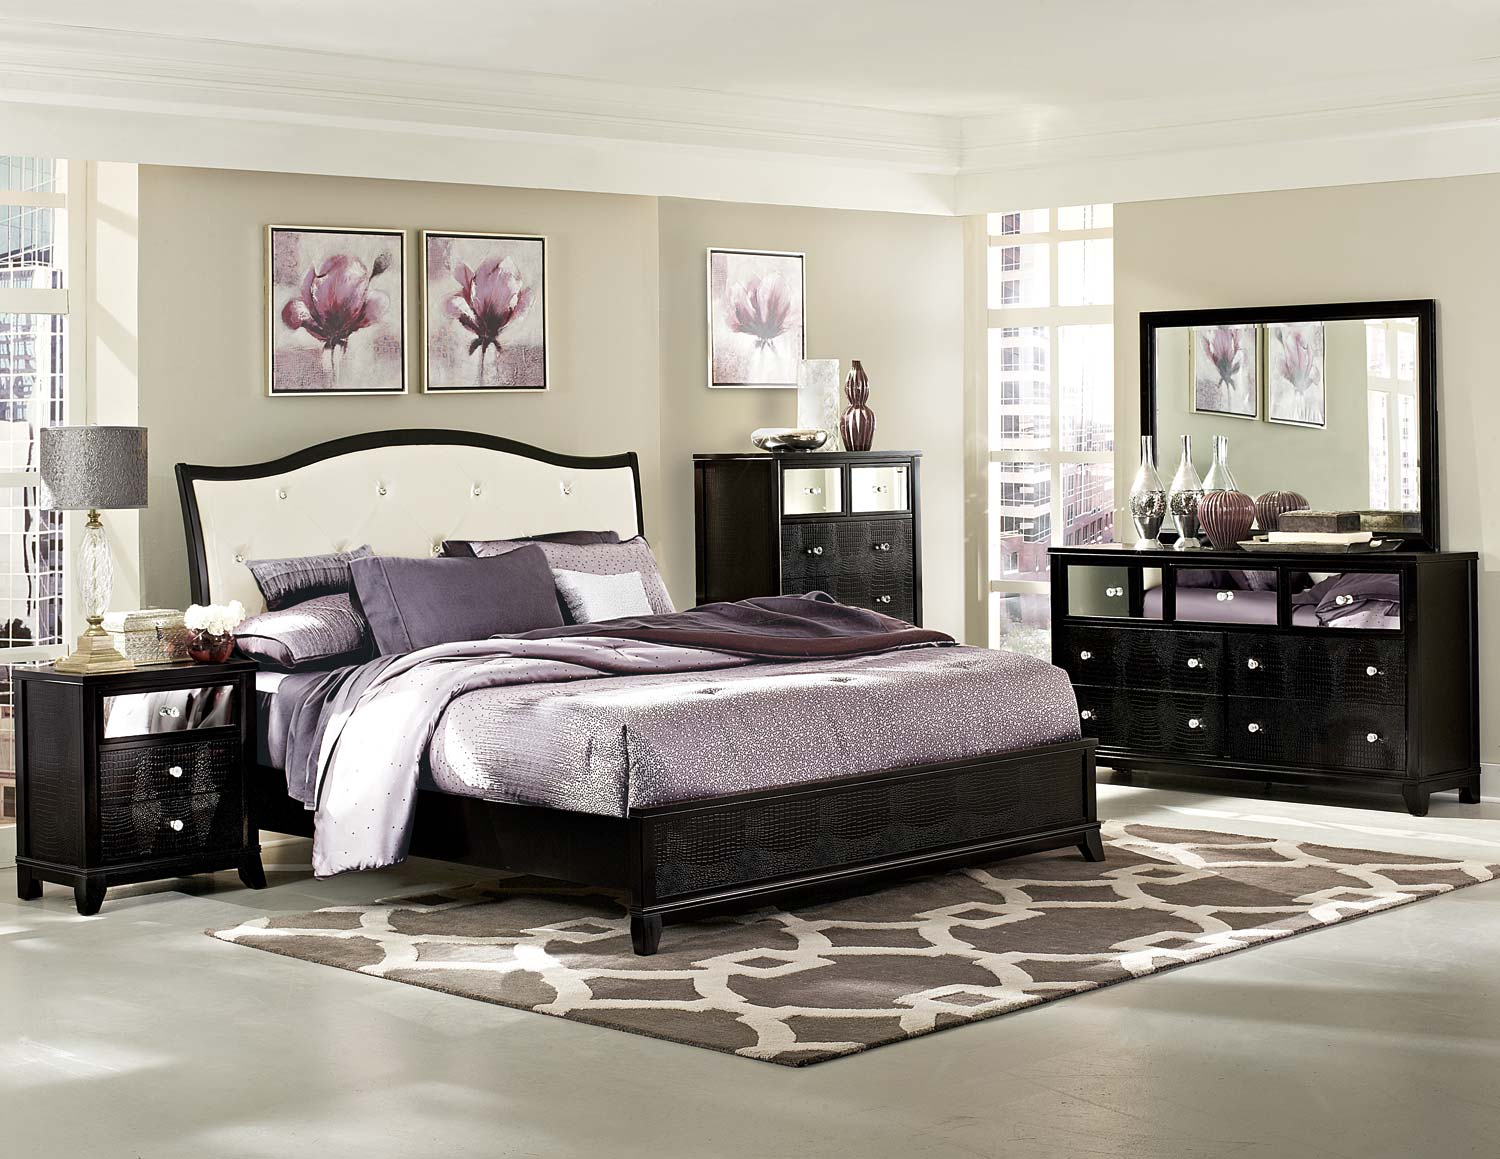 Inspiring Upholstered Bedroom Set Interior